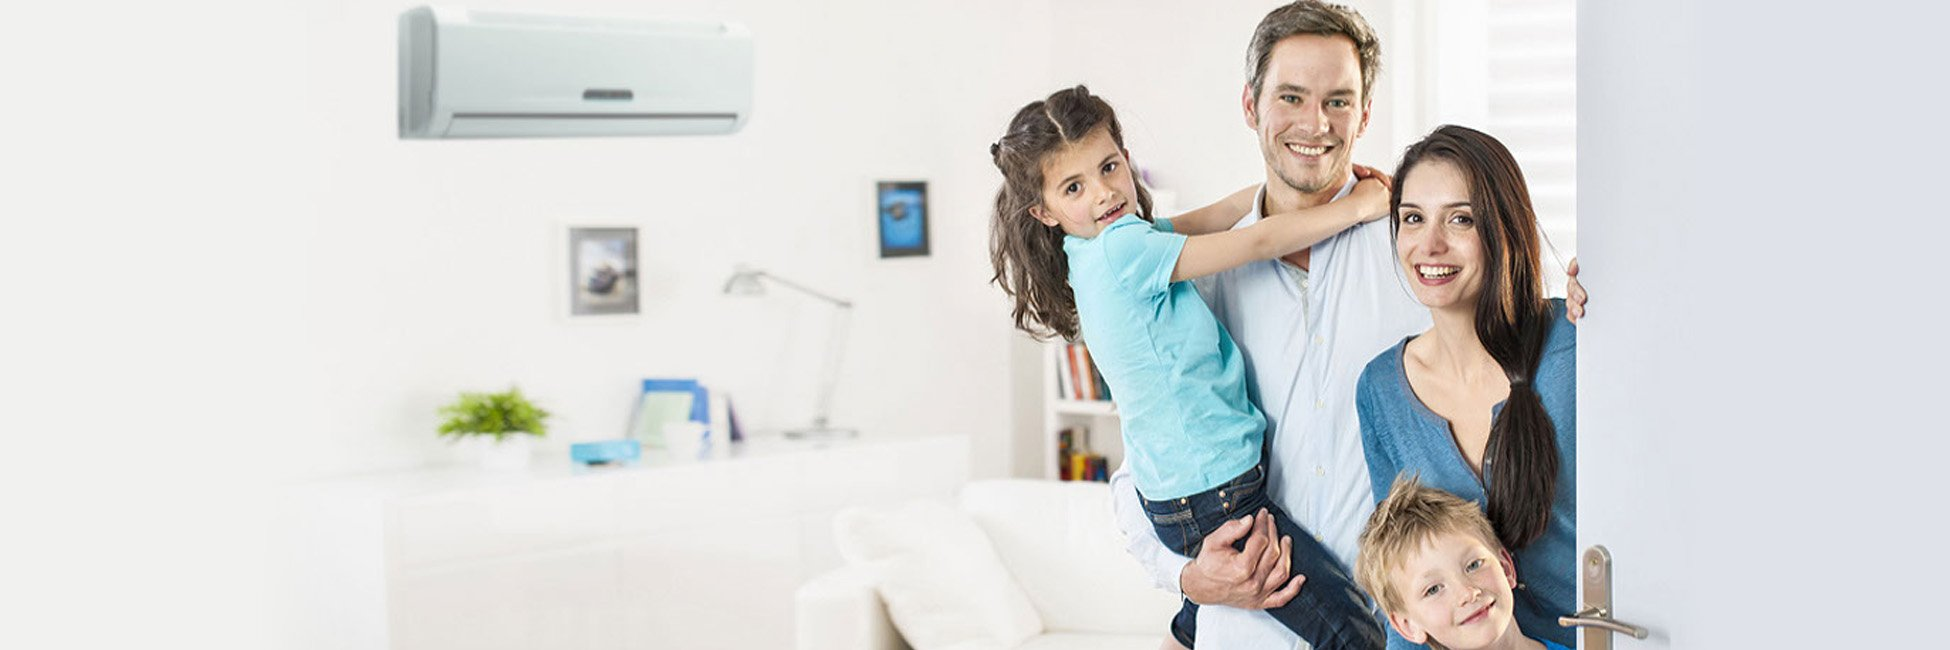 air conditioning on the sunshine coast | cool air conditioning